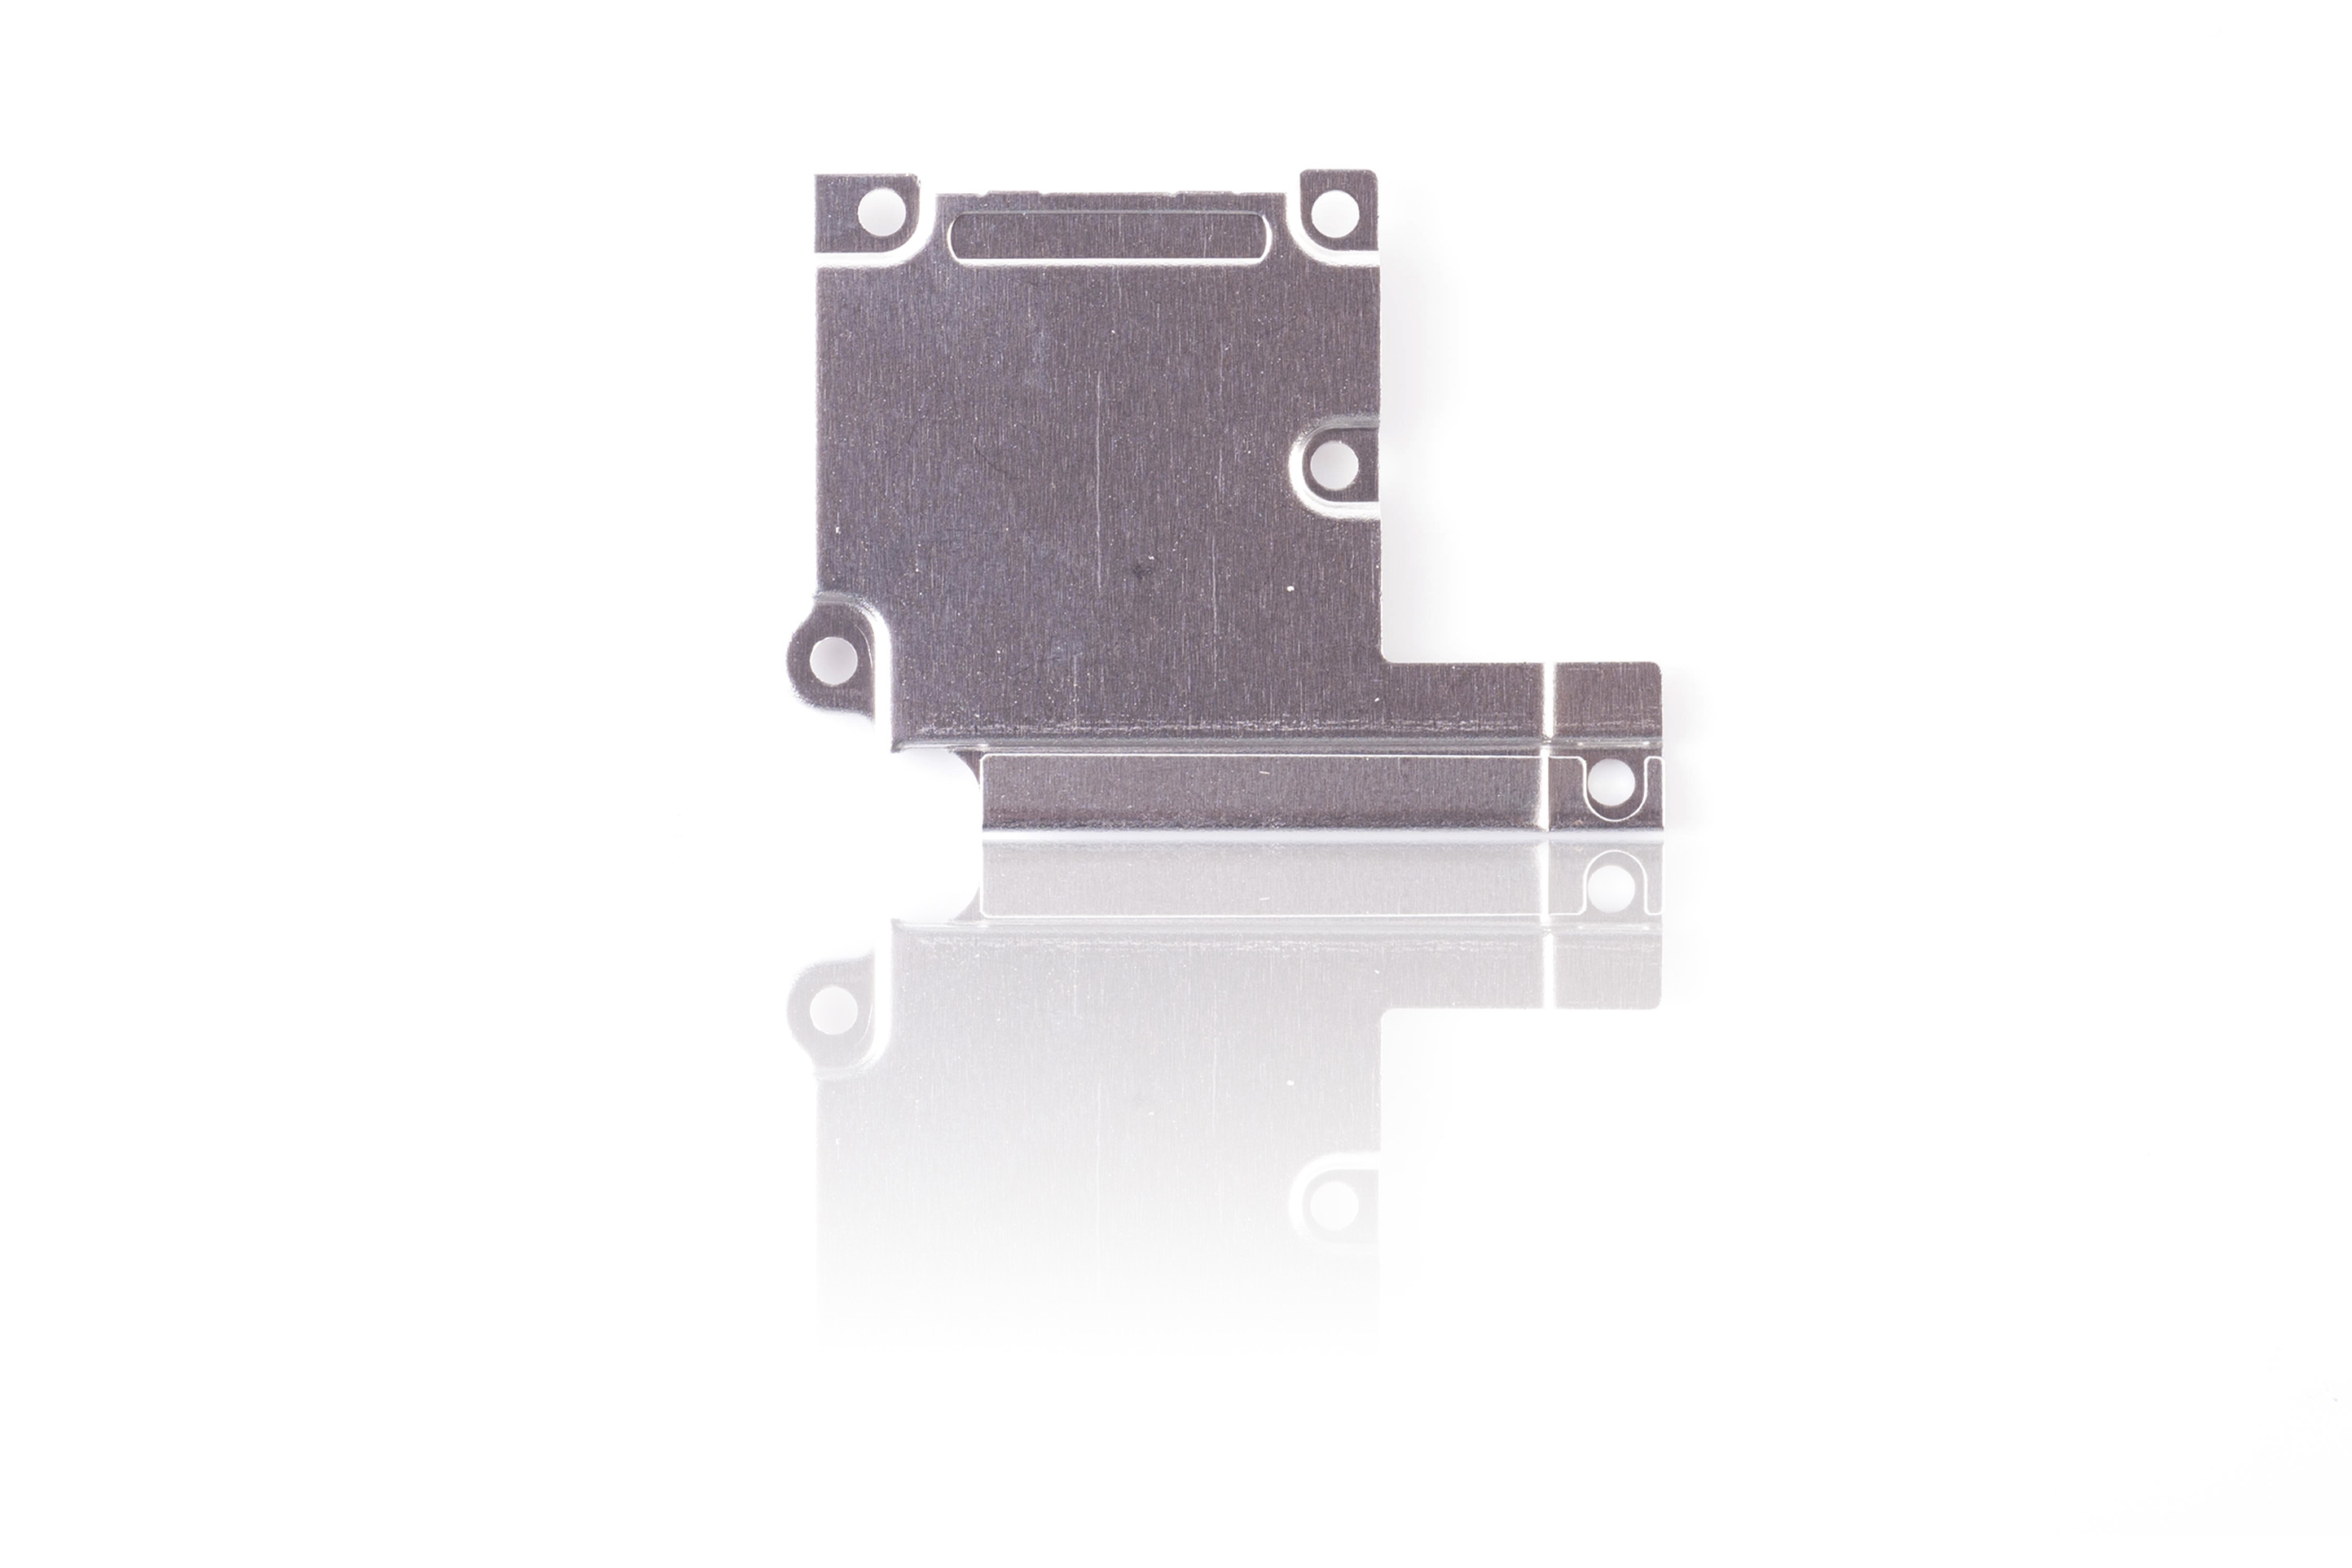 huge selection of cec5f ade53 IPHONE 6 PLUS LCD CABLE BRACKET